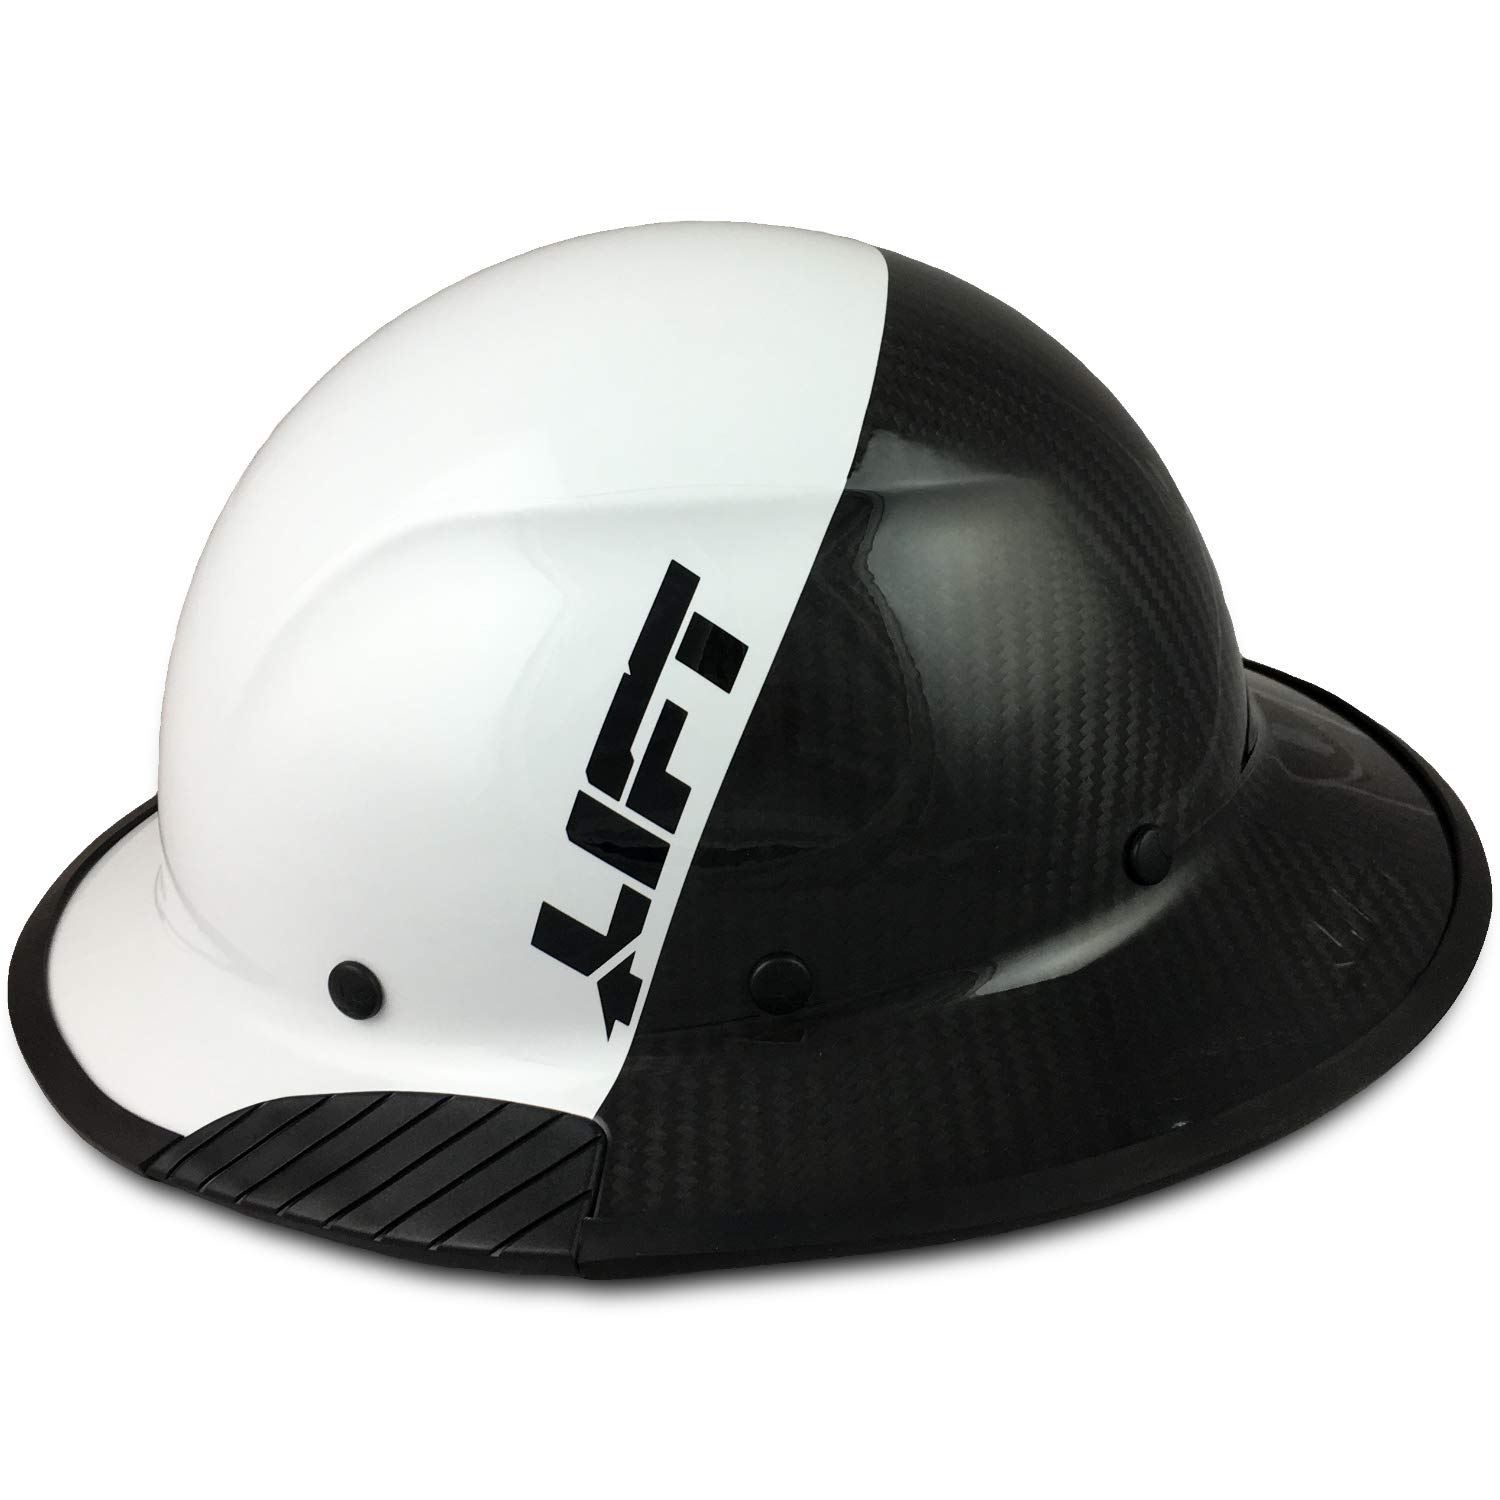 Texas America Safety Company Actual Carbon Fiber Material Hard Hat with Hard Hat Tote- Full Brim, White and Black and Protective Edging